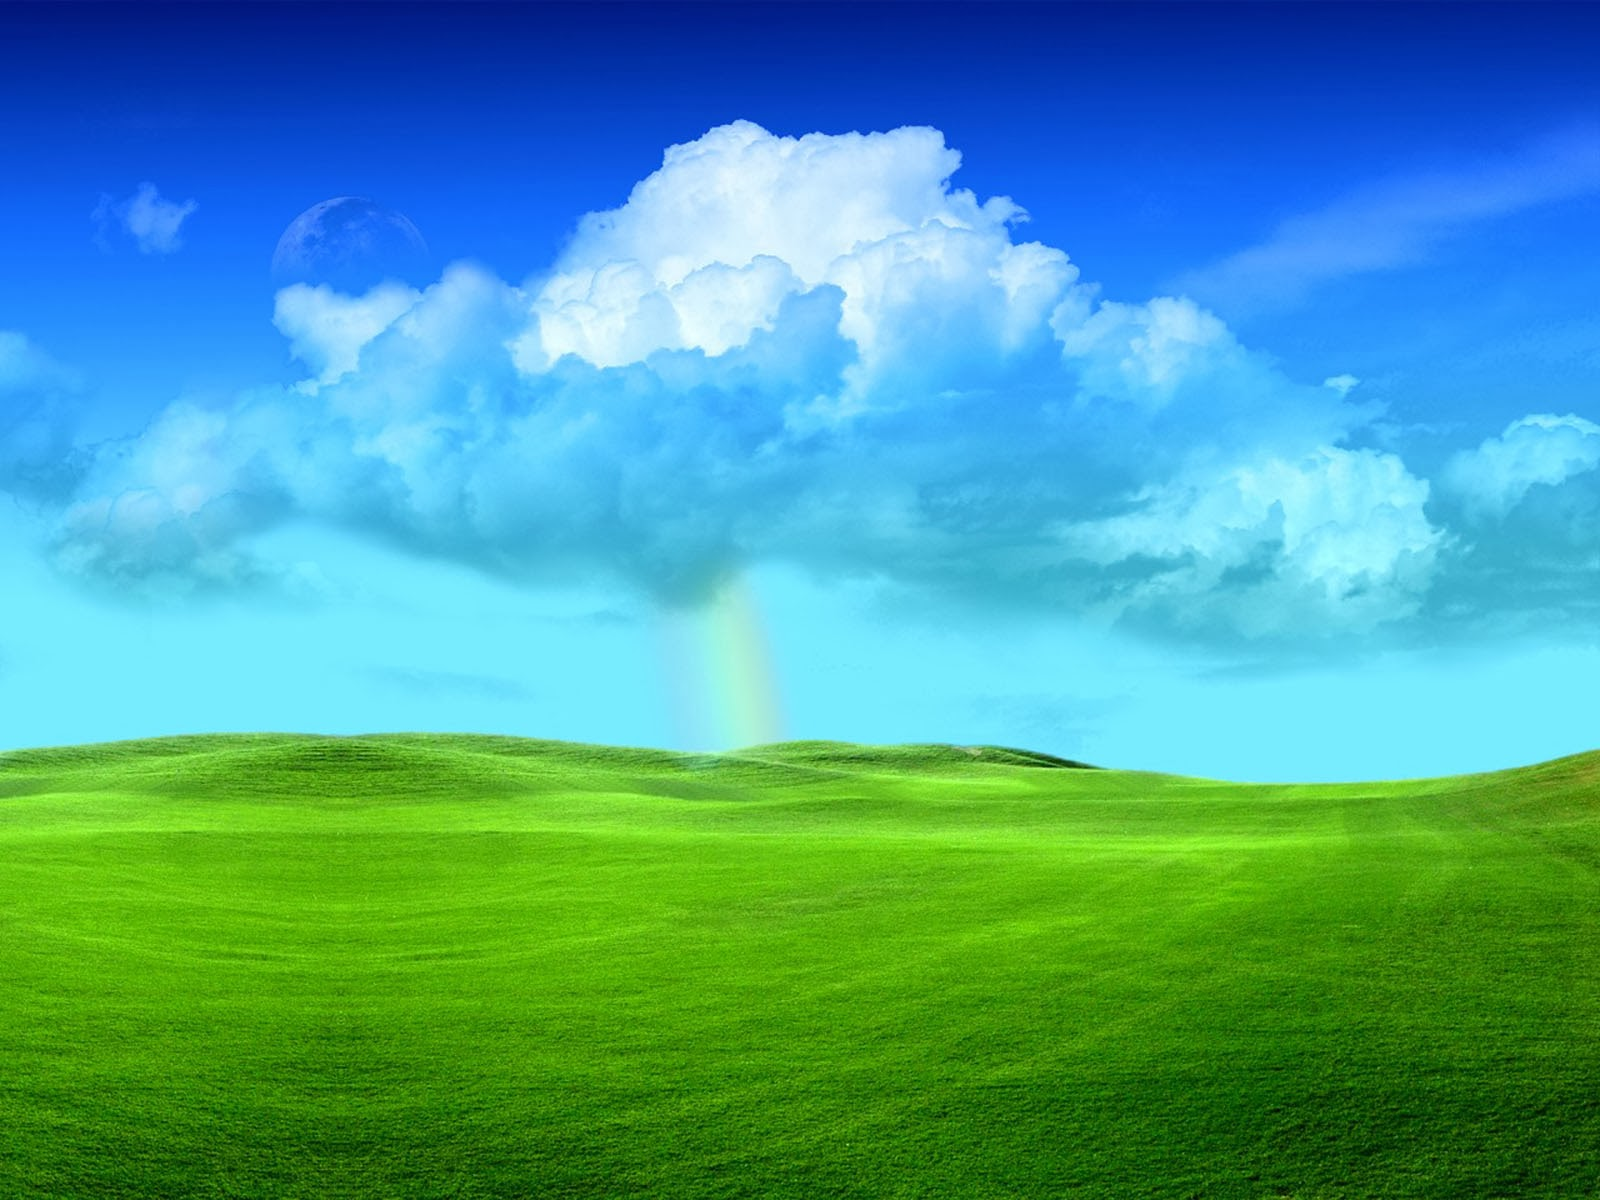 Wallpapers windows vista bliss wallpapers for Window background